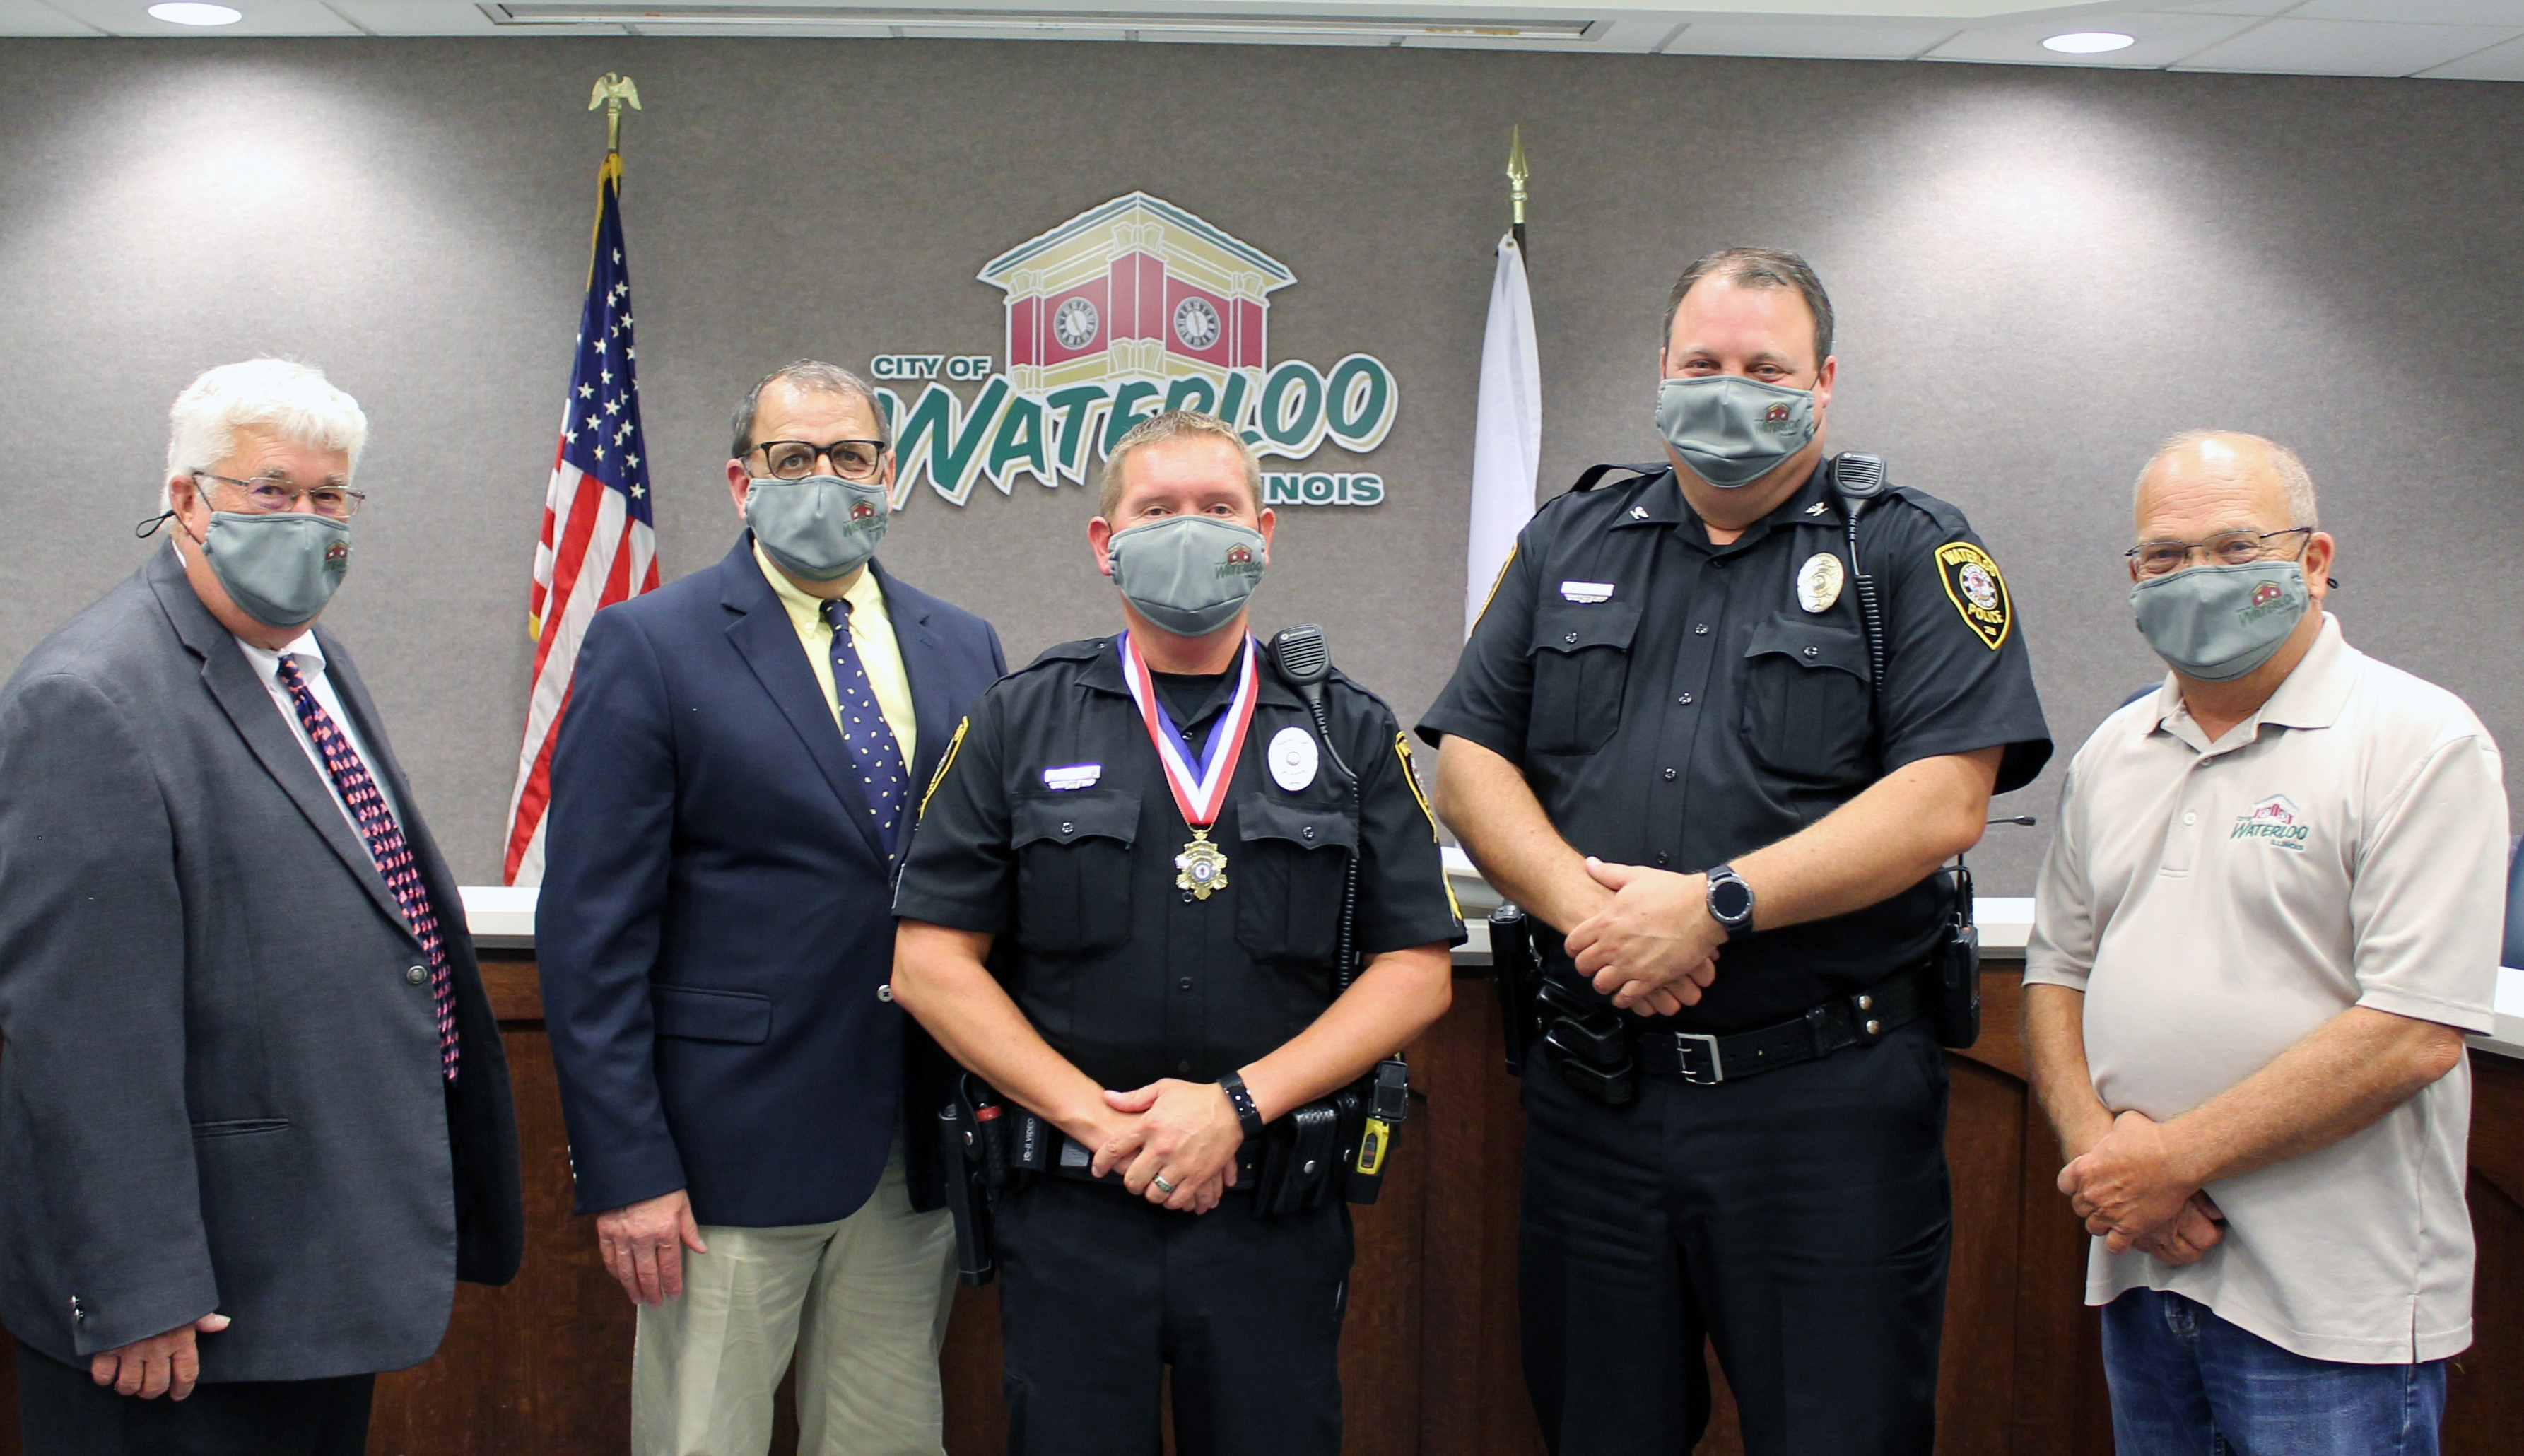 Waterloo's Daws receives Medal of Valor